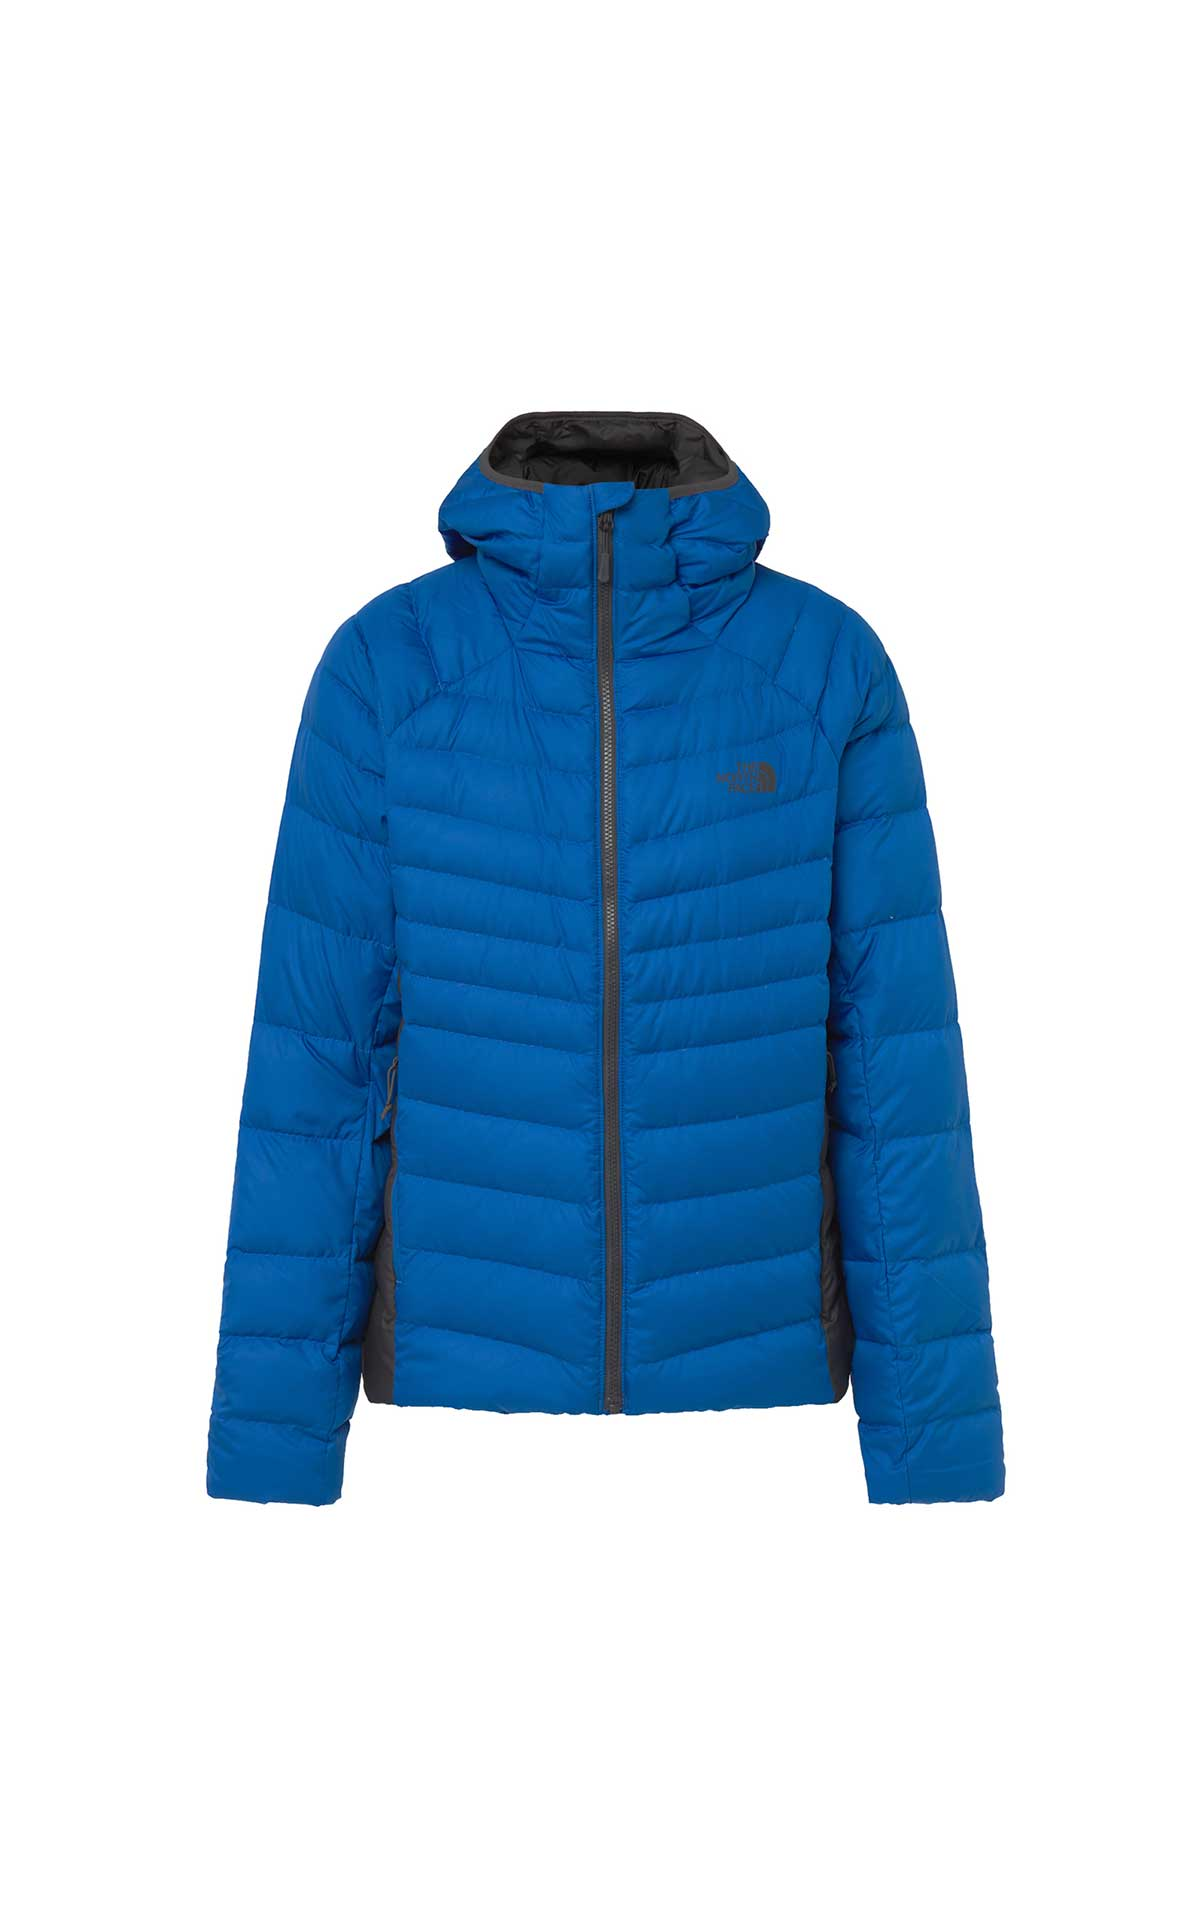 Blue man puffer jacket The North Face